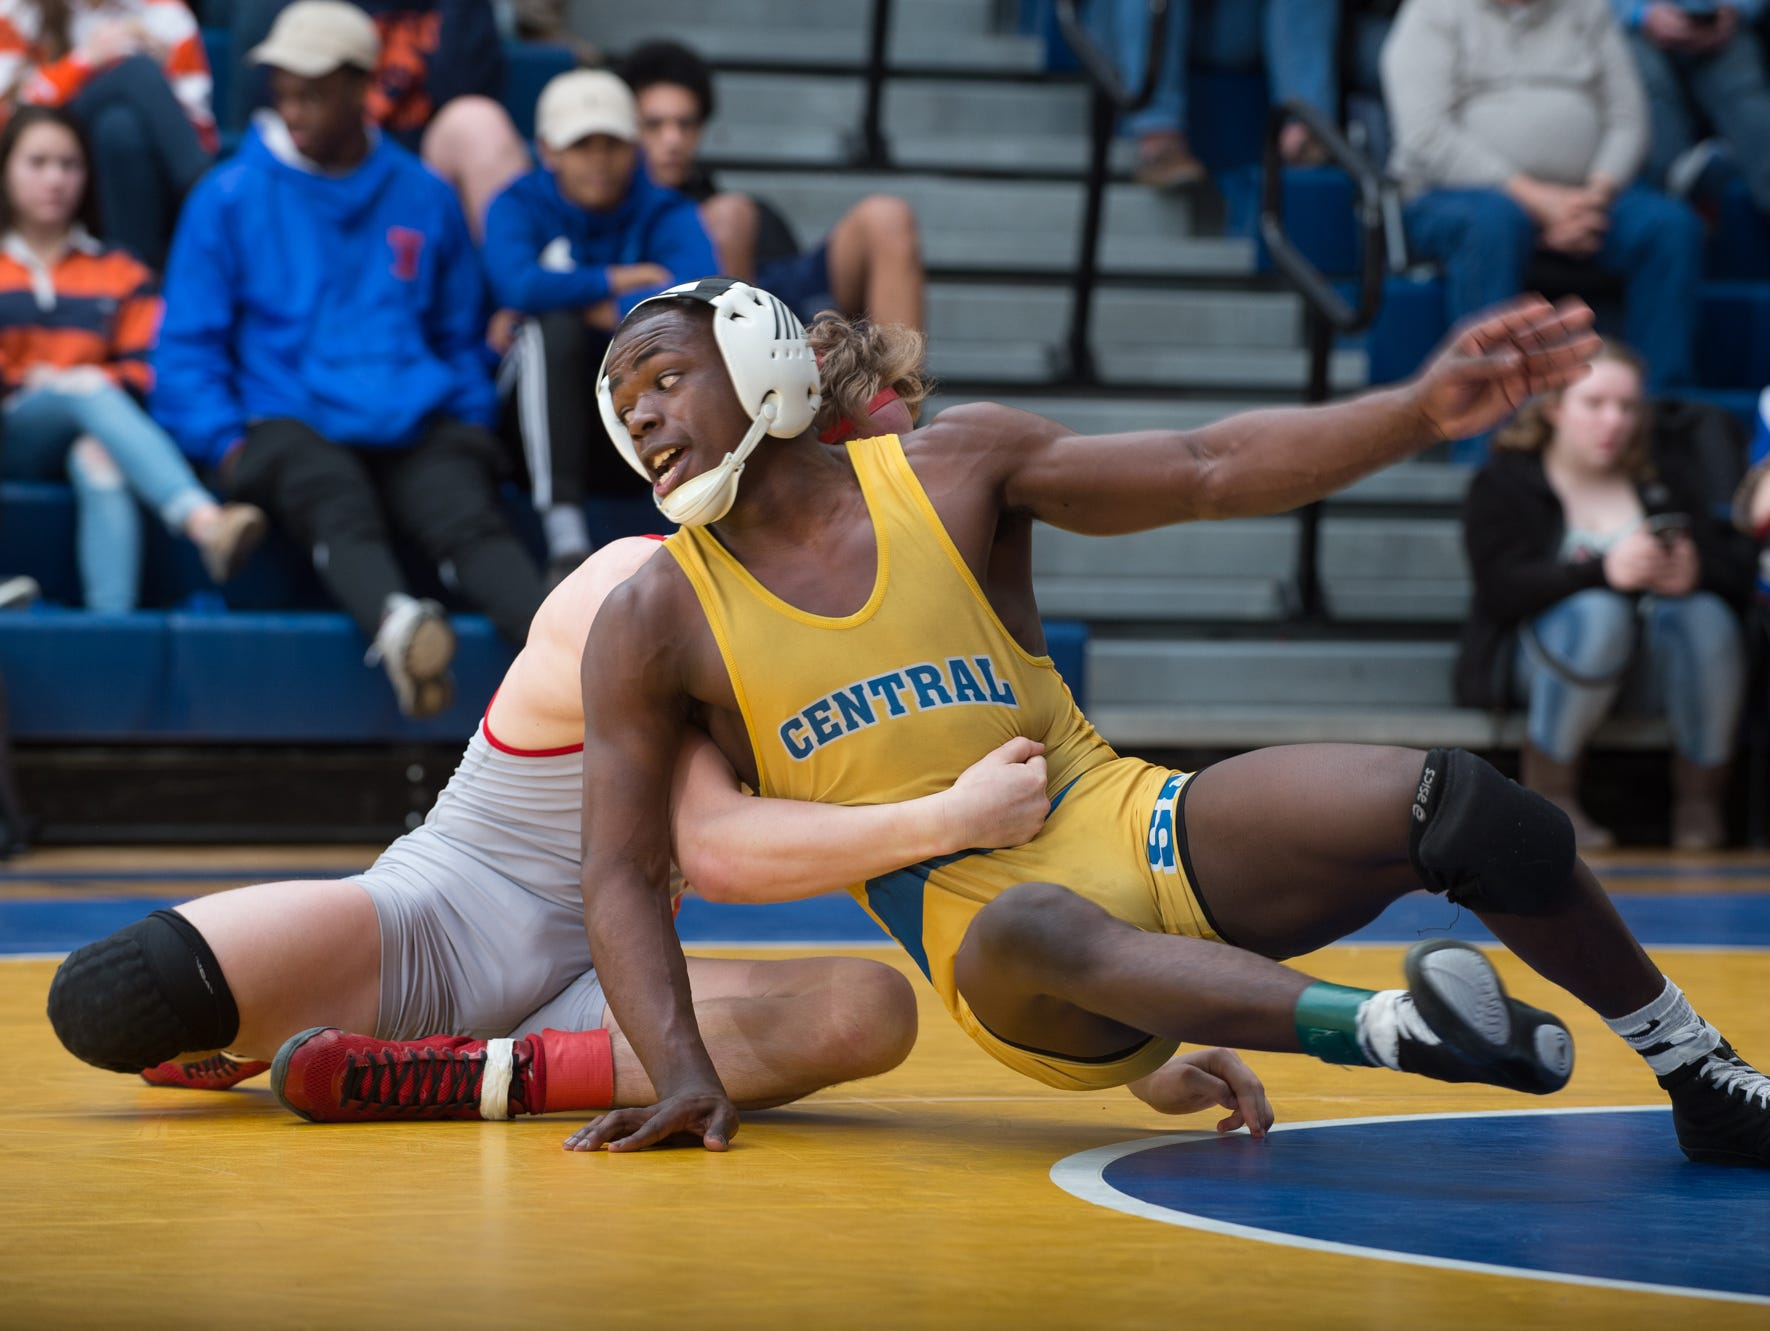 Sussex Central's Rashad Stratton works to get away from a hold by Smyrna's Cole Sebastianelli in the 126 pound championship match at the Henlopen Conference wrestling tournament at Sussex Central High School.